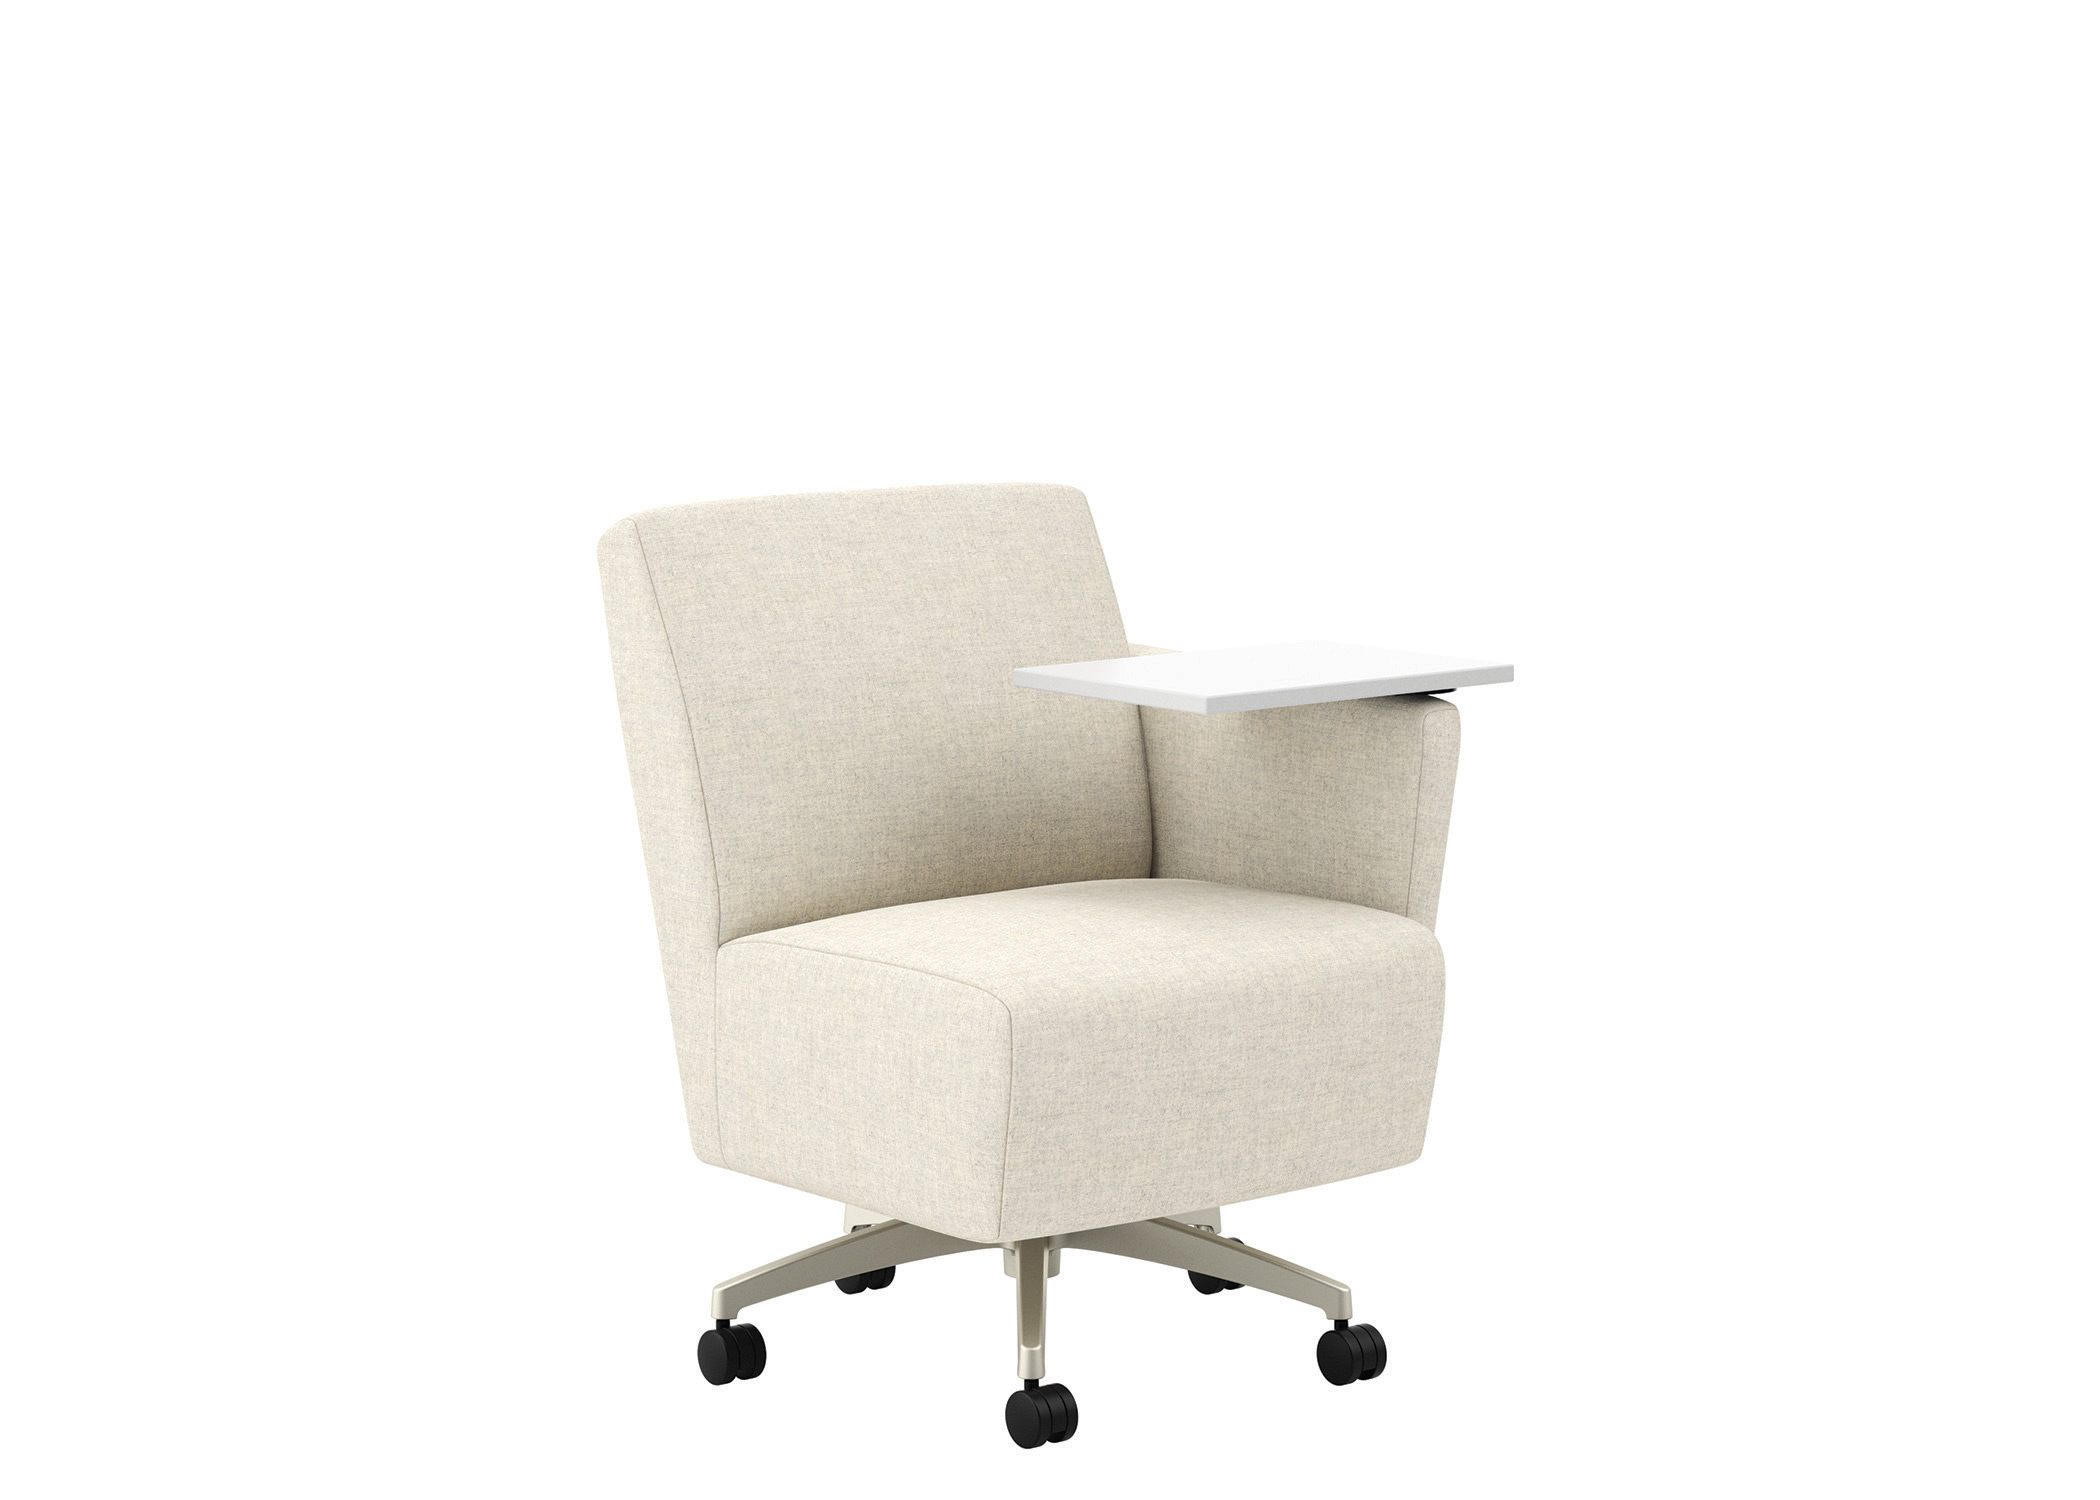 office club chairs chair covers in cork seating national furniture with tablet